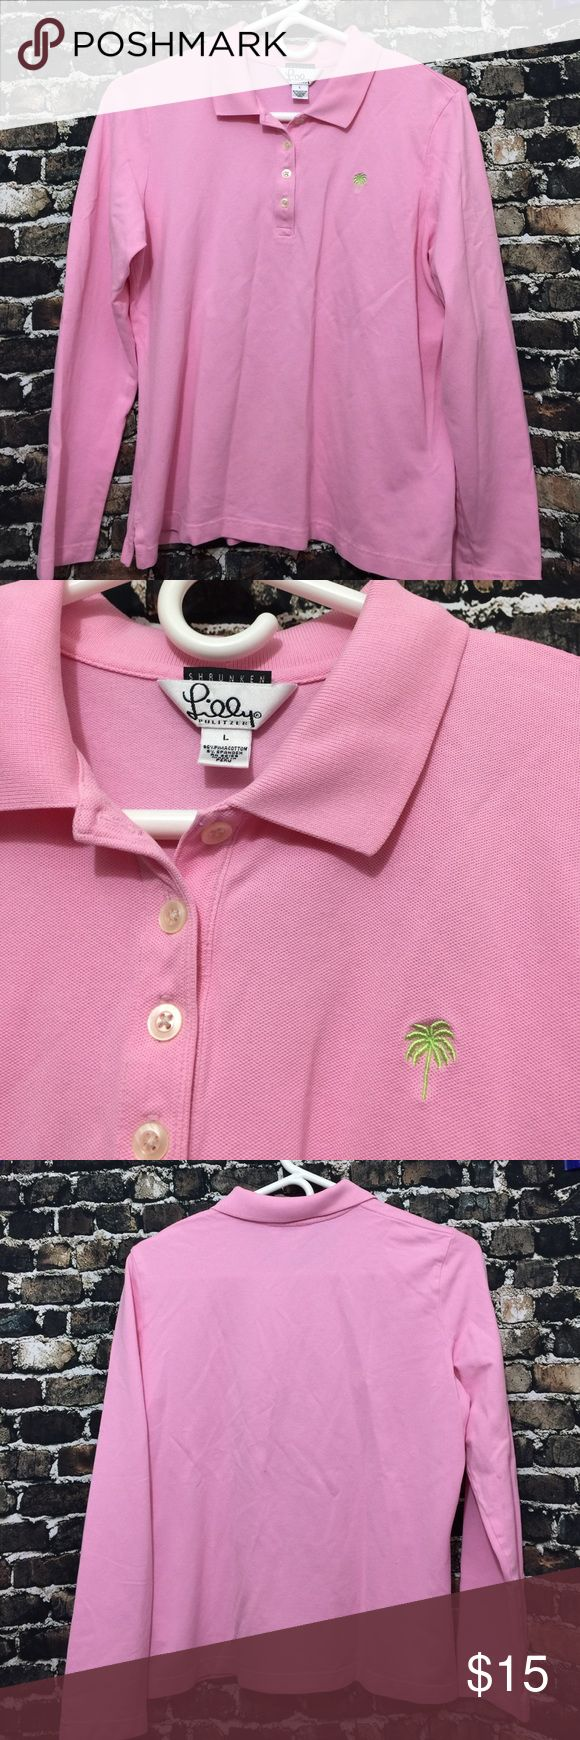 """Lilly Pulitzer Shrunken Pink  Polo Shirt women L🎊 Lilly Pulitzer Shrunken Pink Long Sleeve Pima Cotton  Polo Shirt *Women Large  inventory :z1.   Thank you guys  Please check out the another item in my store:)  ∴MEASUREMENTS∴  Pit to Pit→20"""" Shoulder to shoulder→15"""" Length from shoulder ---->22"""" Measurements Are Approximate  And May Vary Slightly. Lilly Pulitzer Tops Tees - Long Sleeve"""